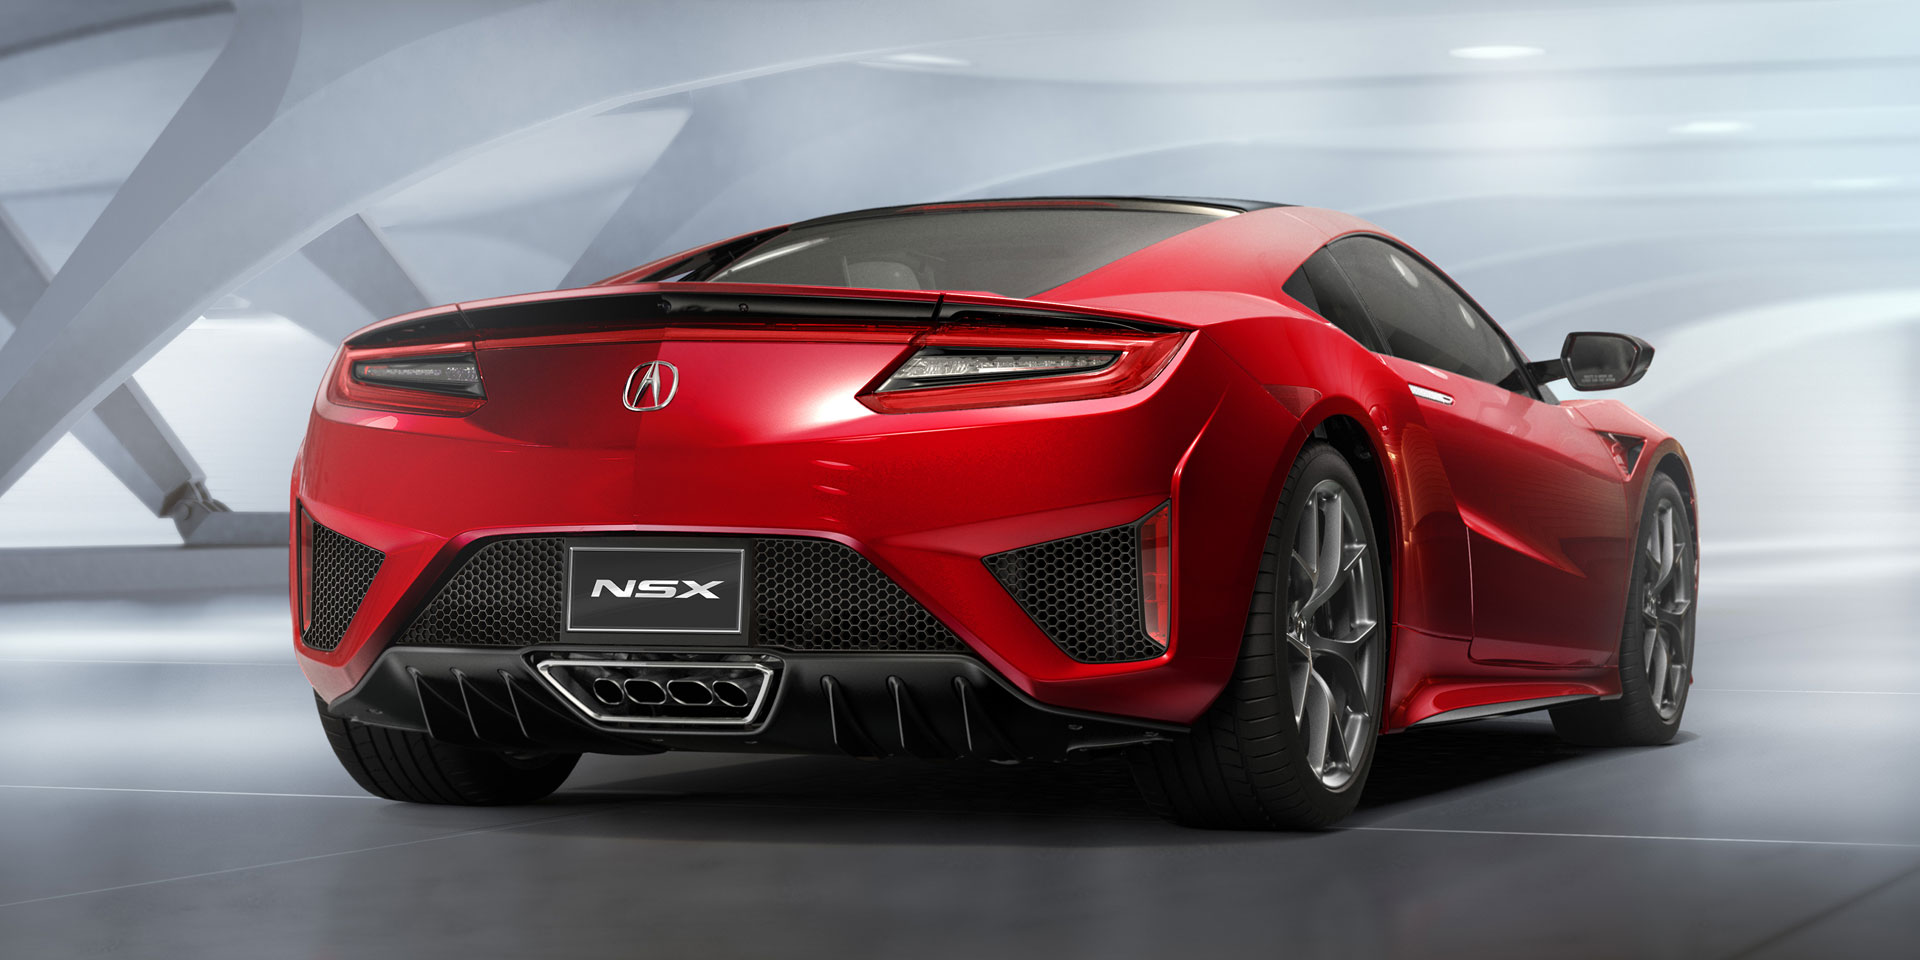 2016 Acura Nsx Super Cars From Around The Globe Are Must Sees At Chicago Auto Show And That Includes Upcoming 108th Annual